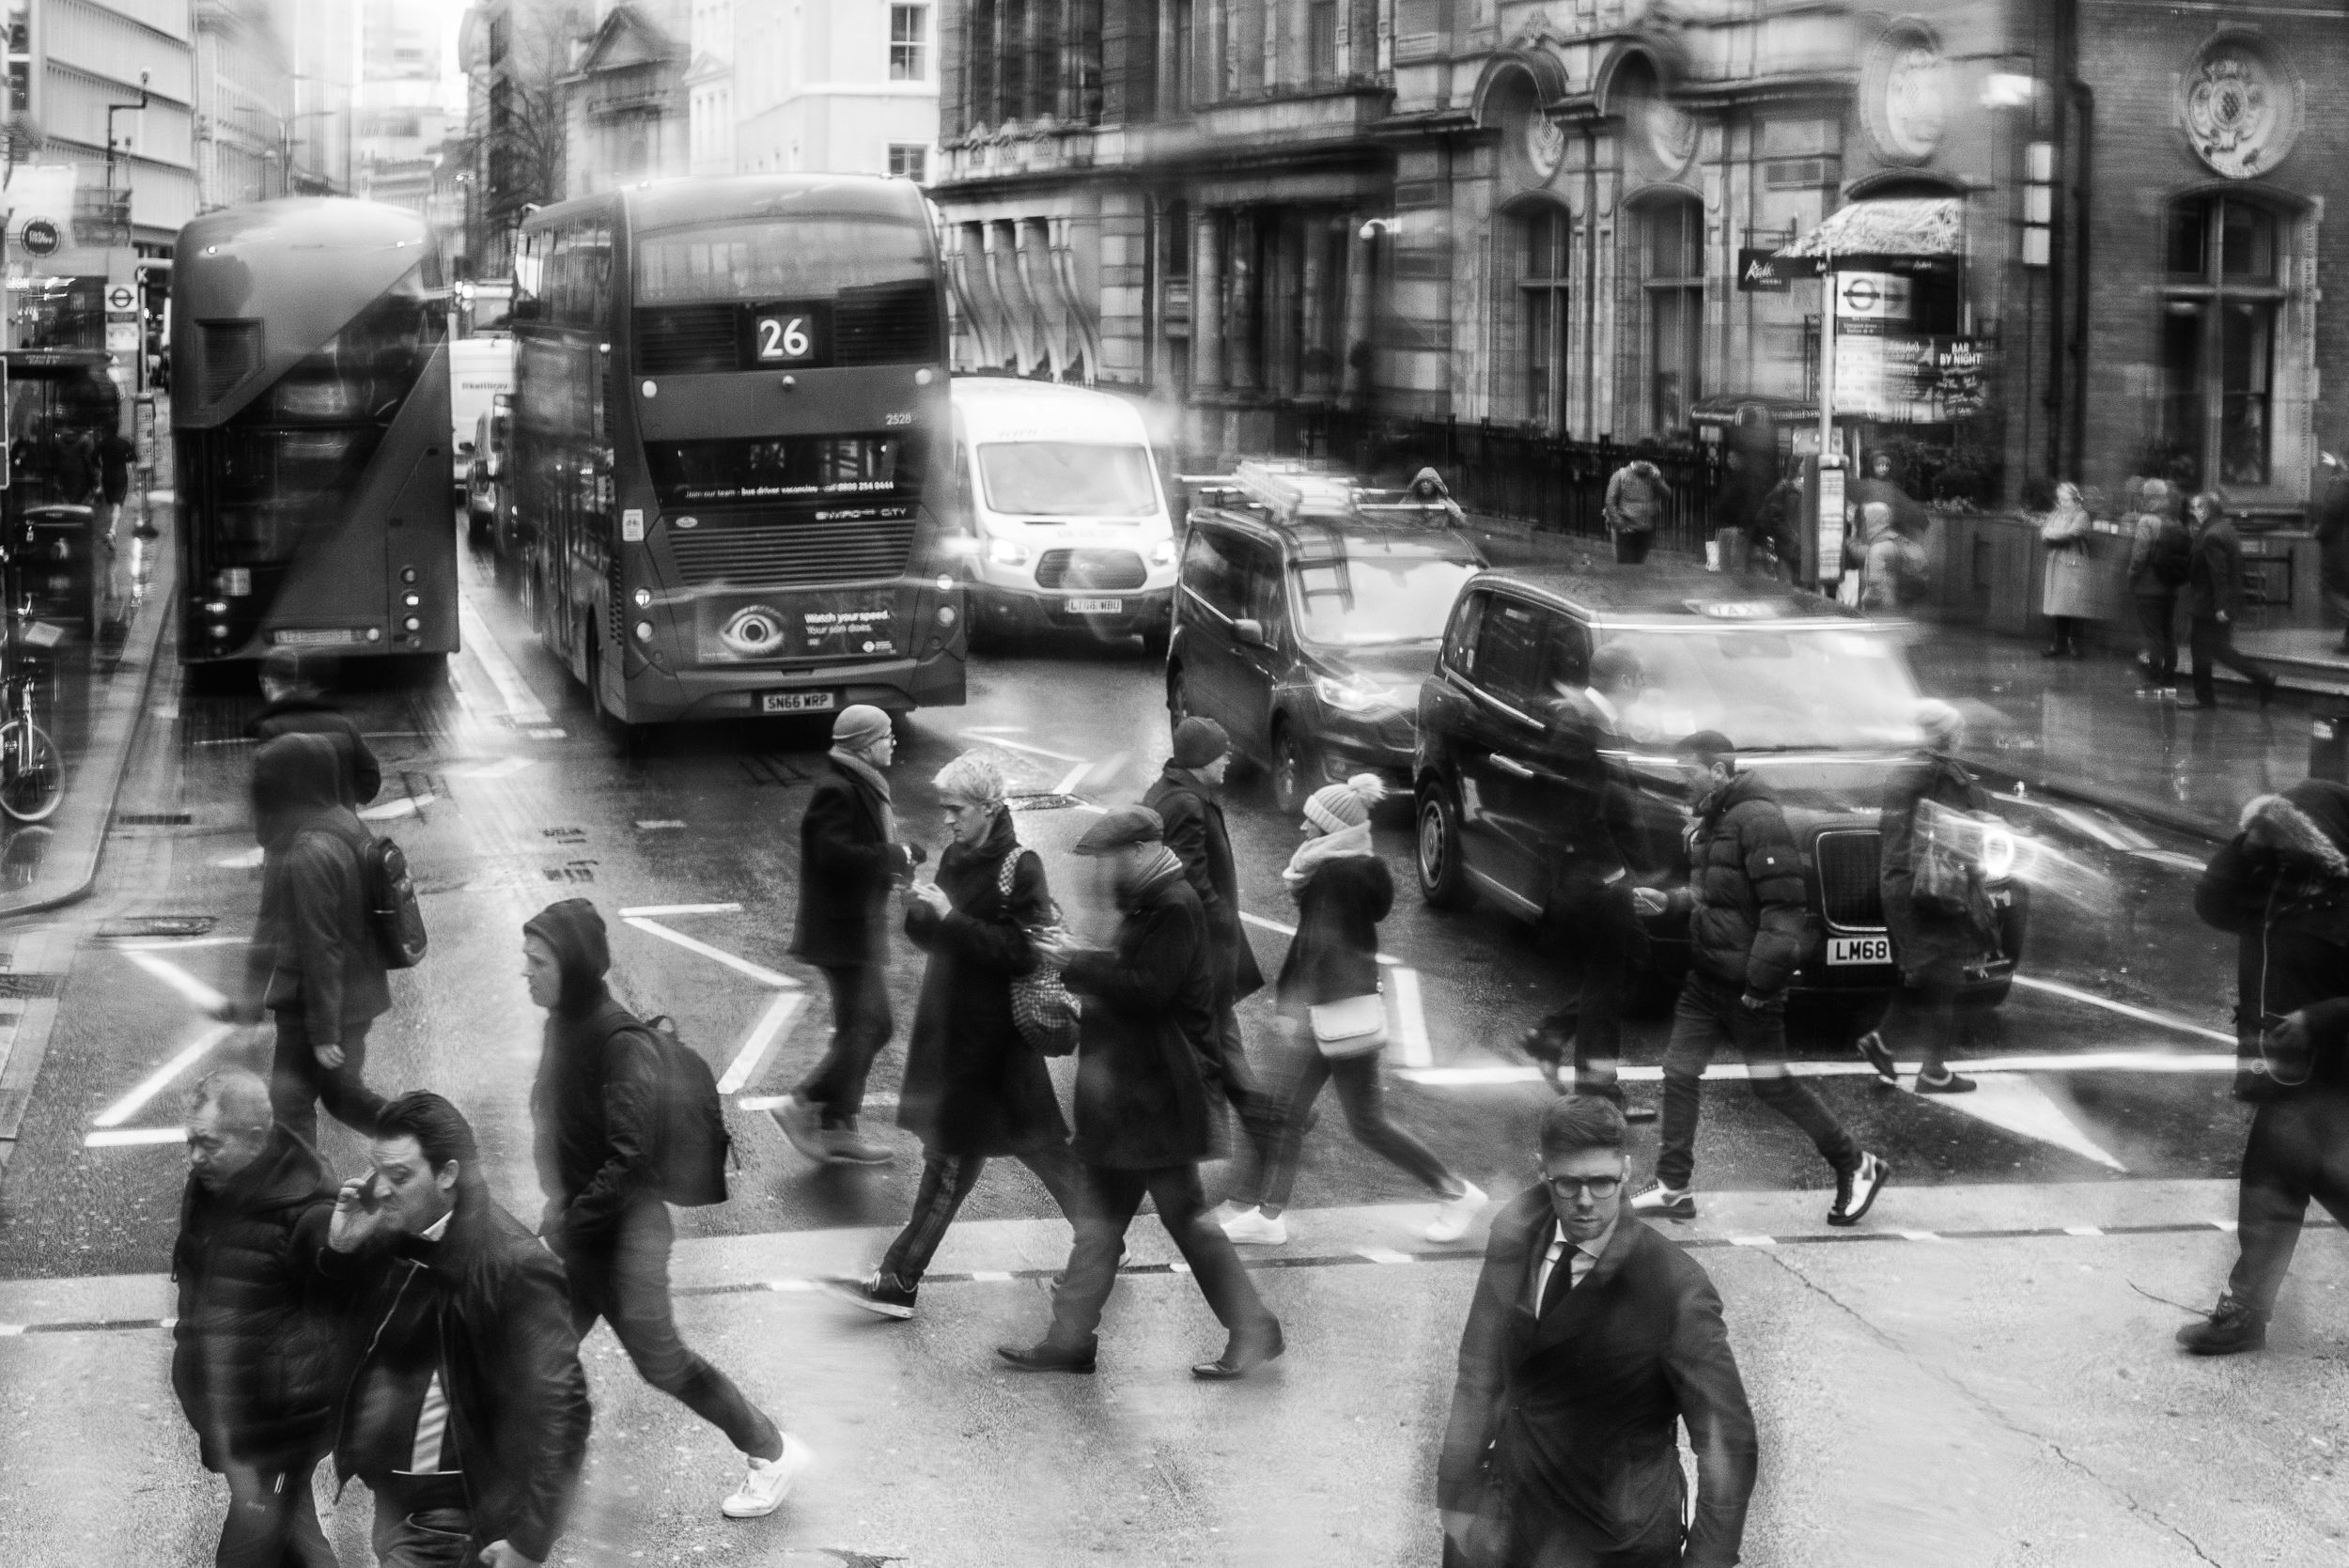 Black and white image of people crossing the street in London